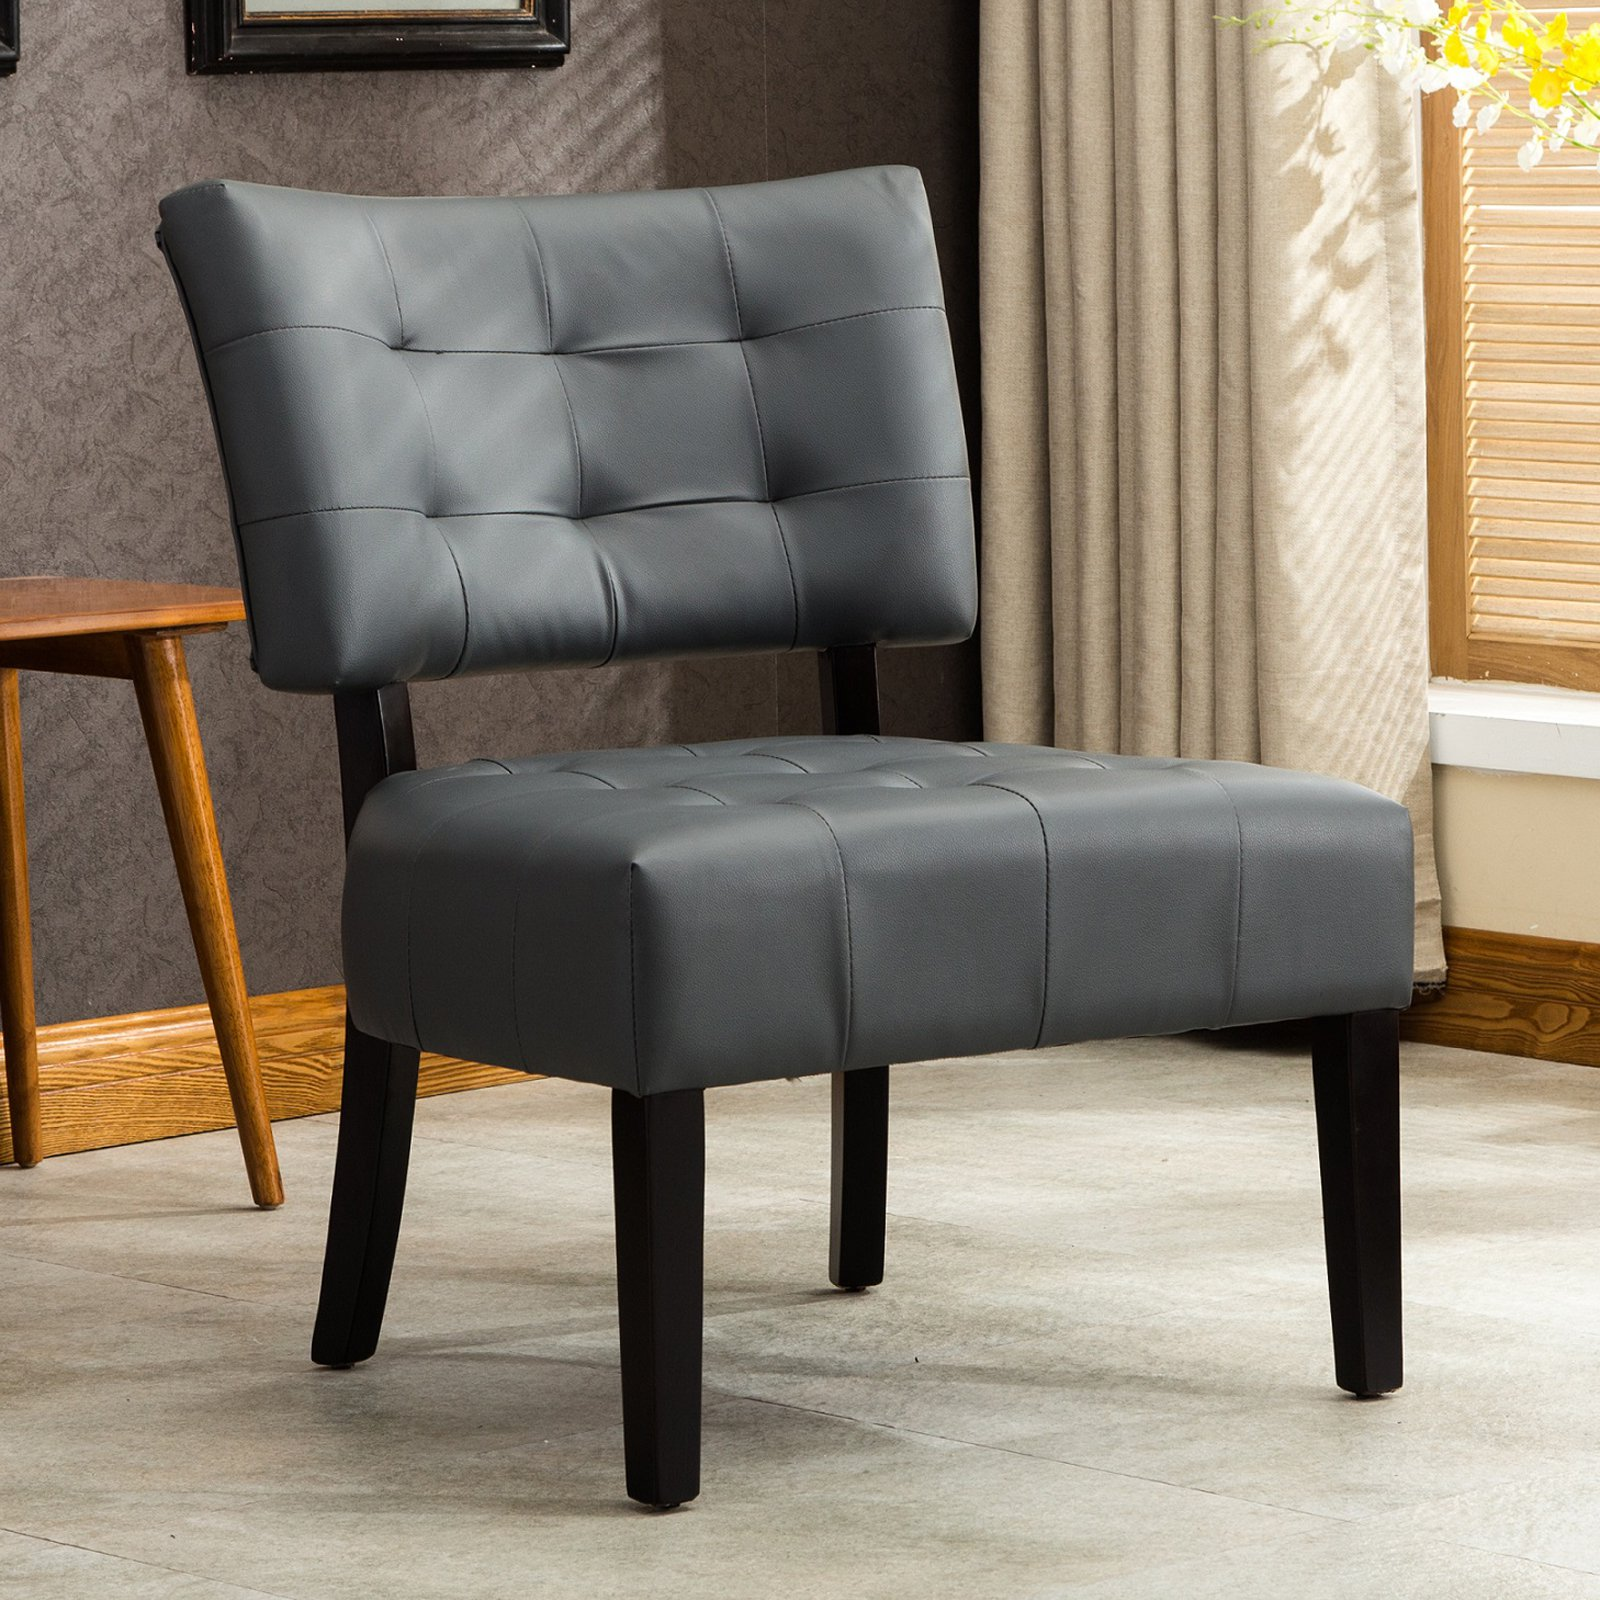 Roundhill Blended Leather Tufted Accent Chair with Oversized Seating, Multiple Colors Available by RHF